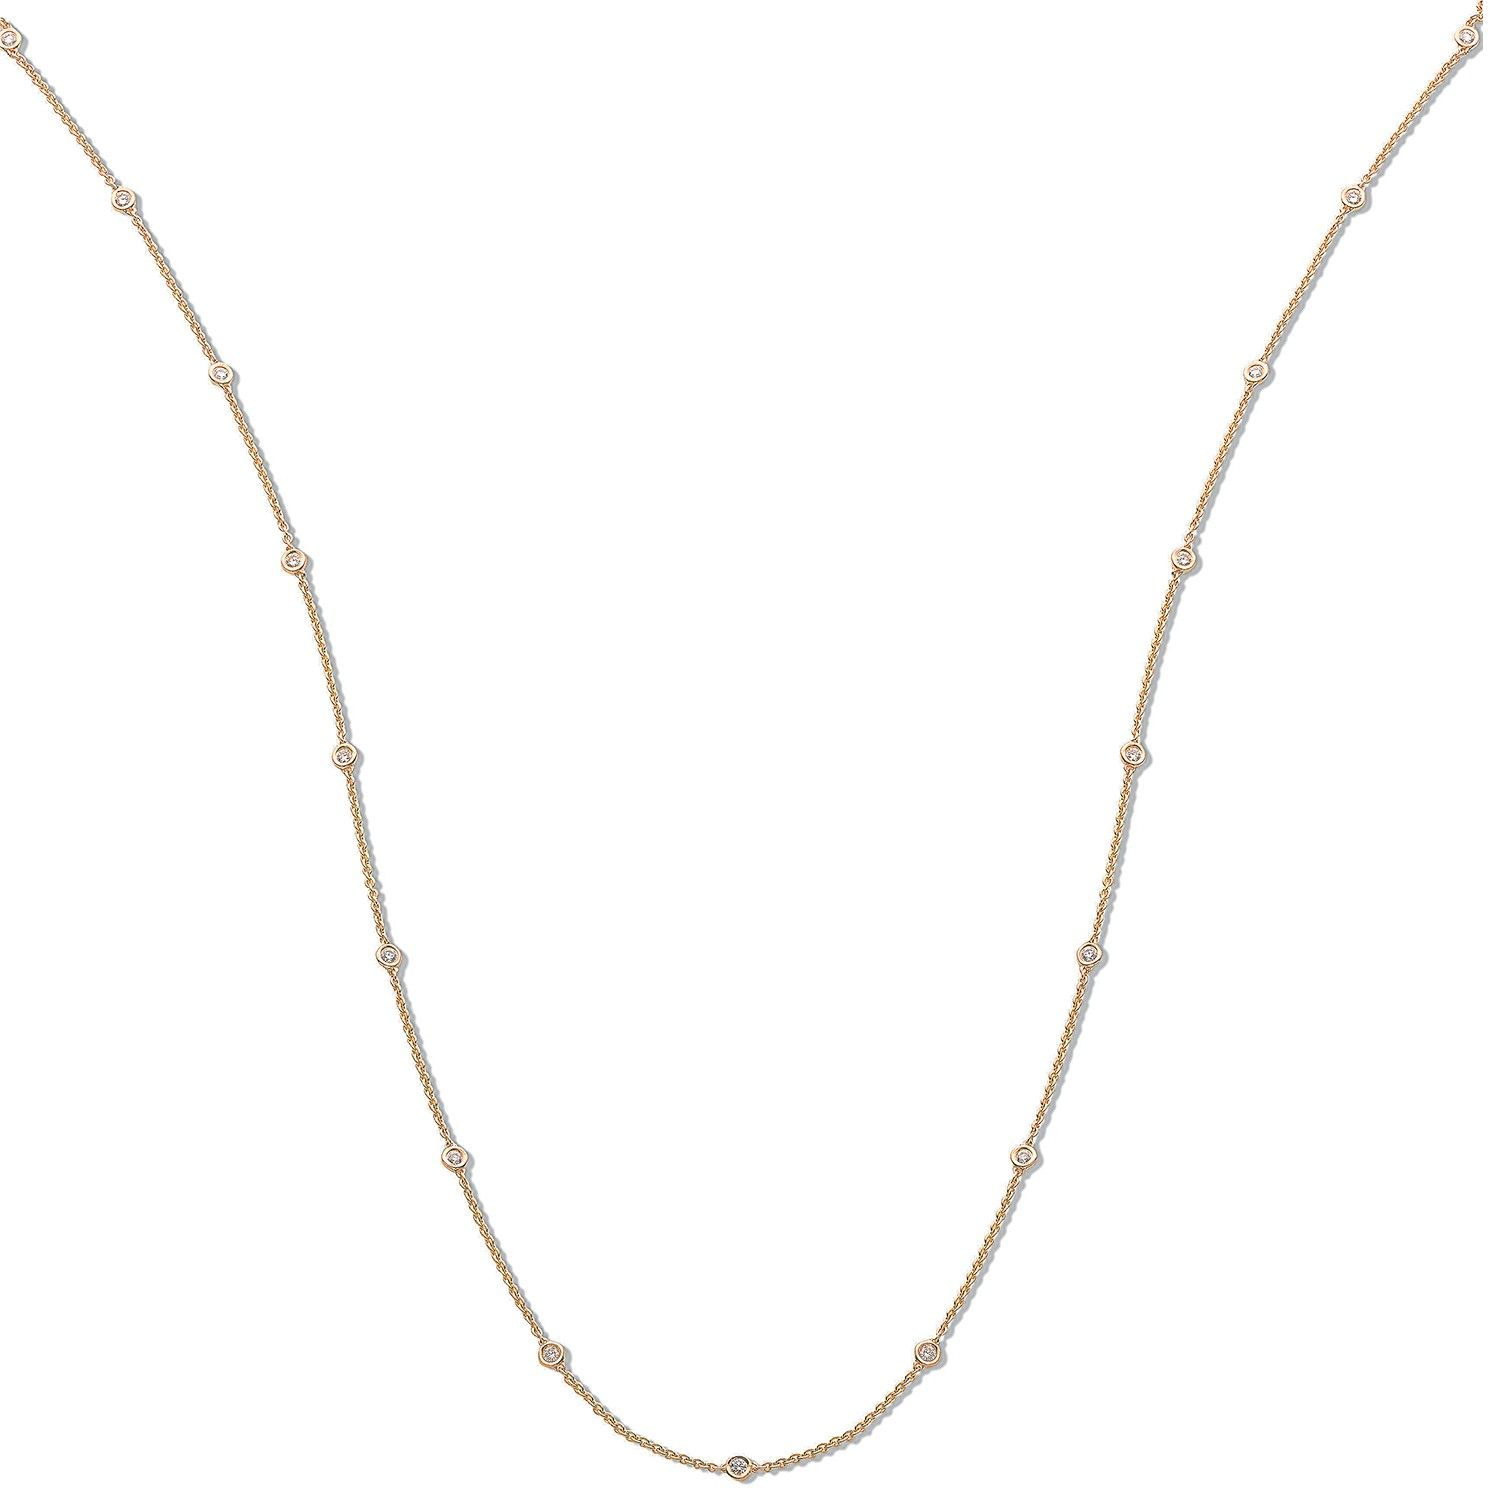 18ct Yellow Gold 1.00ct Rubover Diamond Chain (36in/91cm)